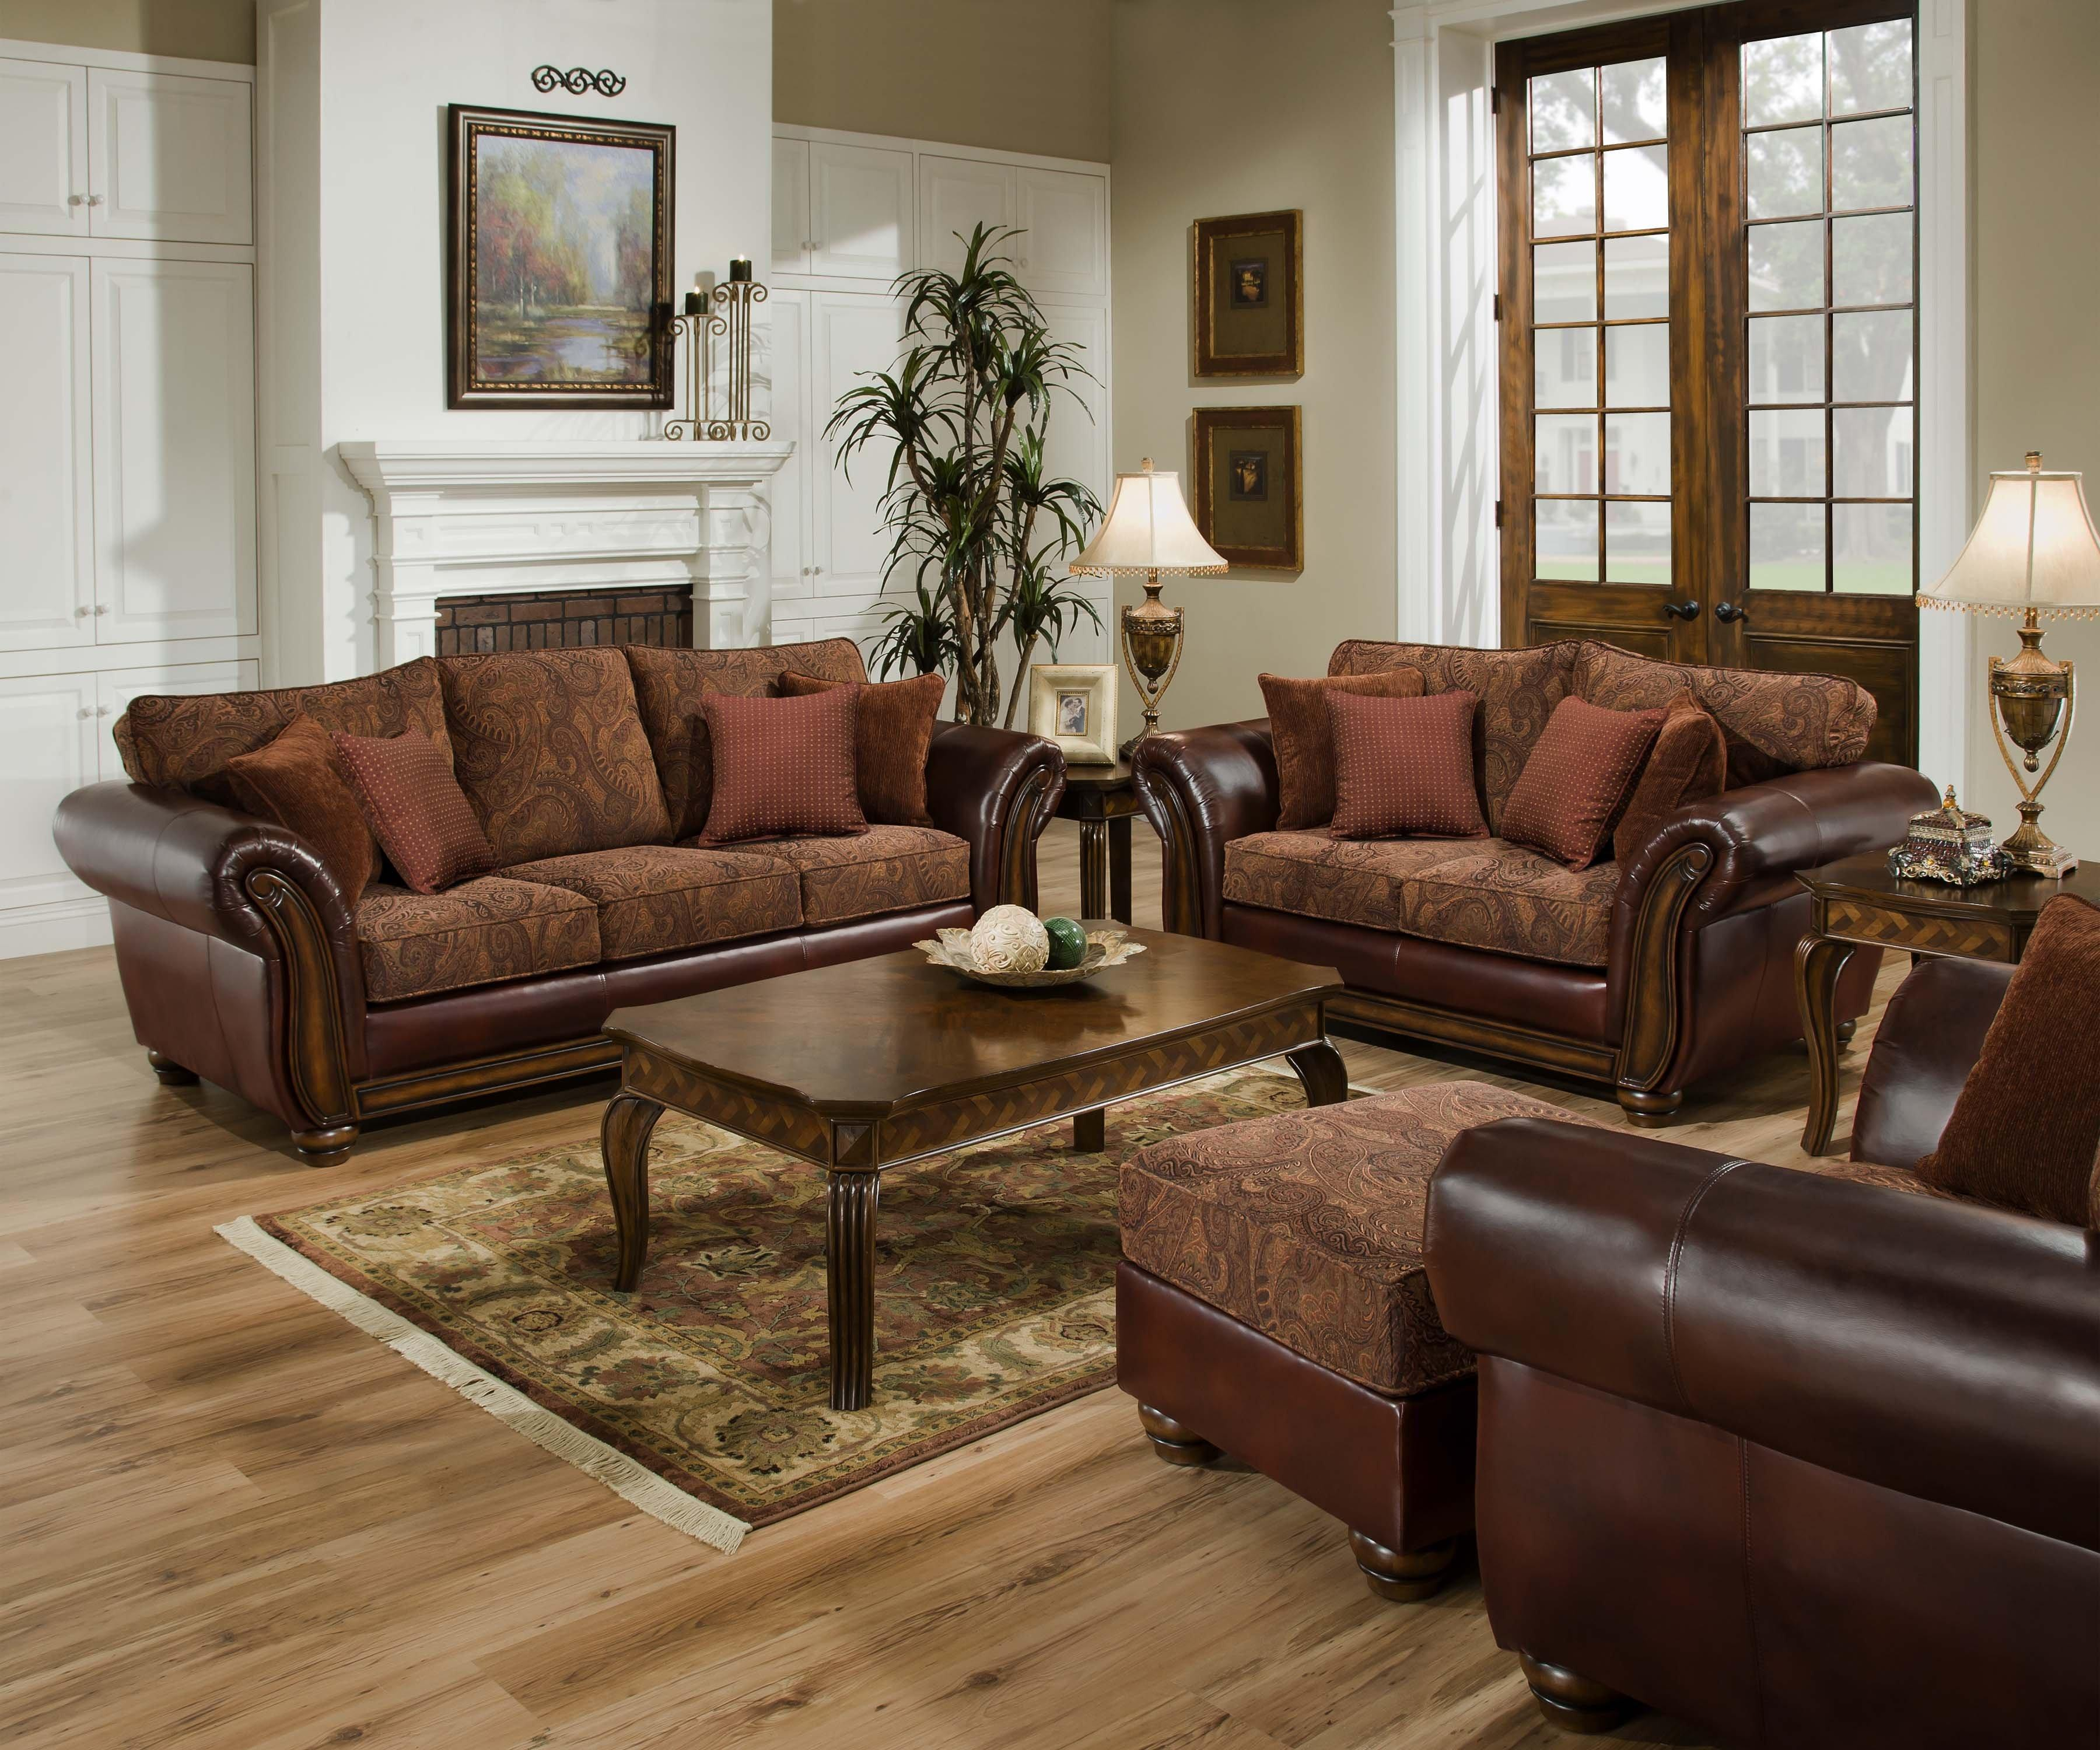 Latest United Furniture Industries Queen Leather And Chenille Hideabed Sofa  Sleeper Charleston Furniture Sleeper Sofas With Furniture Stores Near Reading  Pa